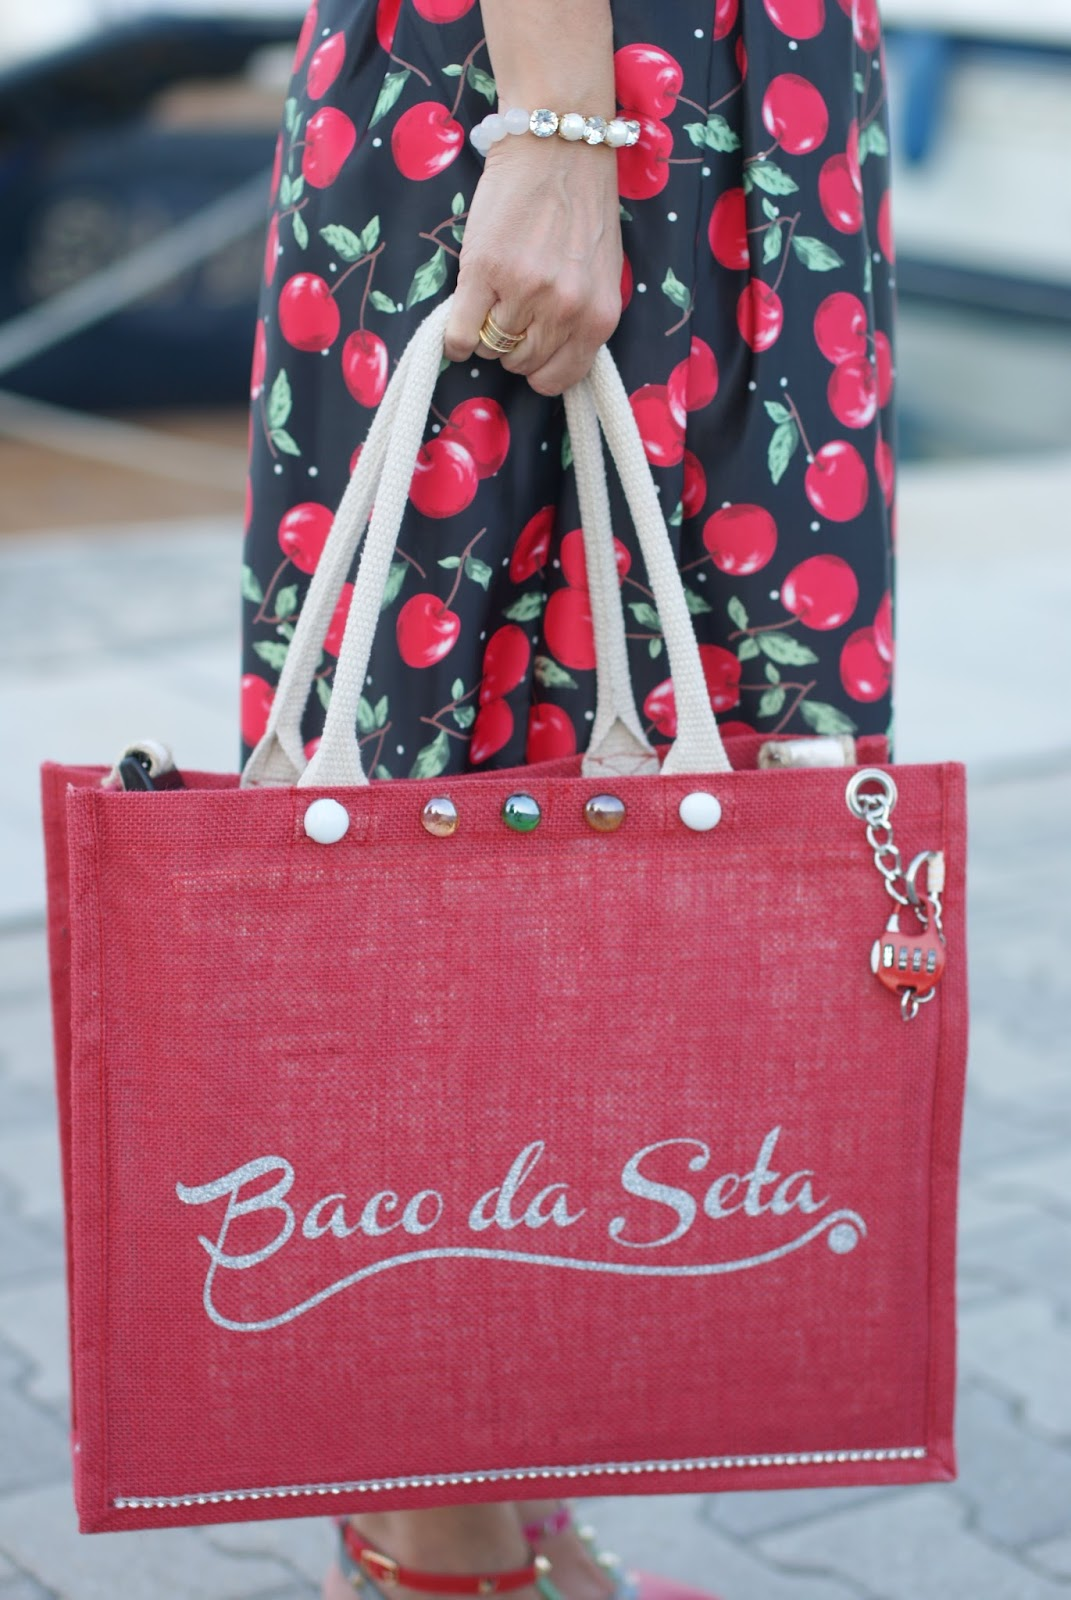 Baco da Seta Ideas anti-theft bag, borsa antifurto, jute bag and Luca Barra bracelet on Fashion and Cookies fashion blog